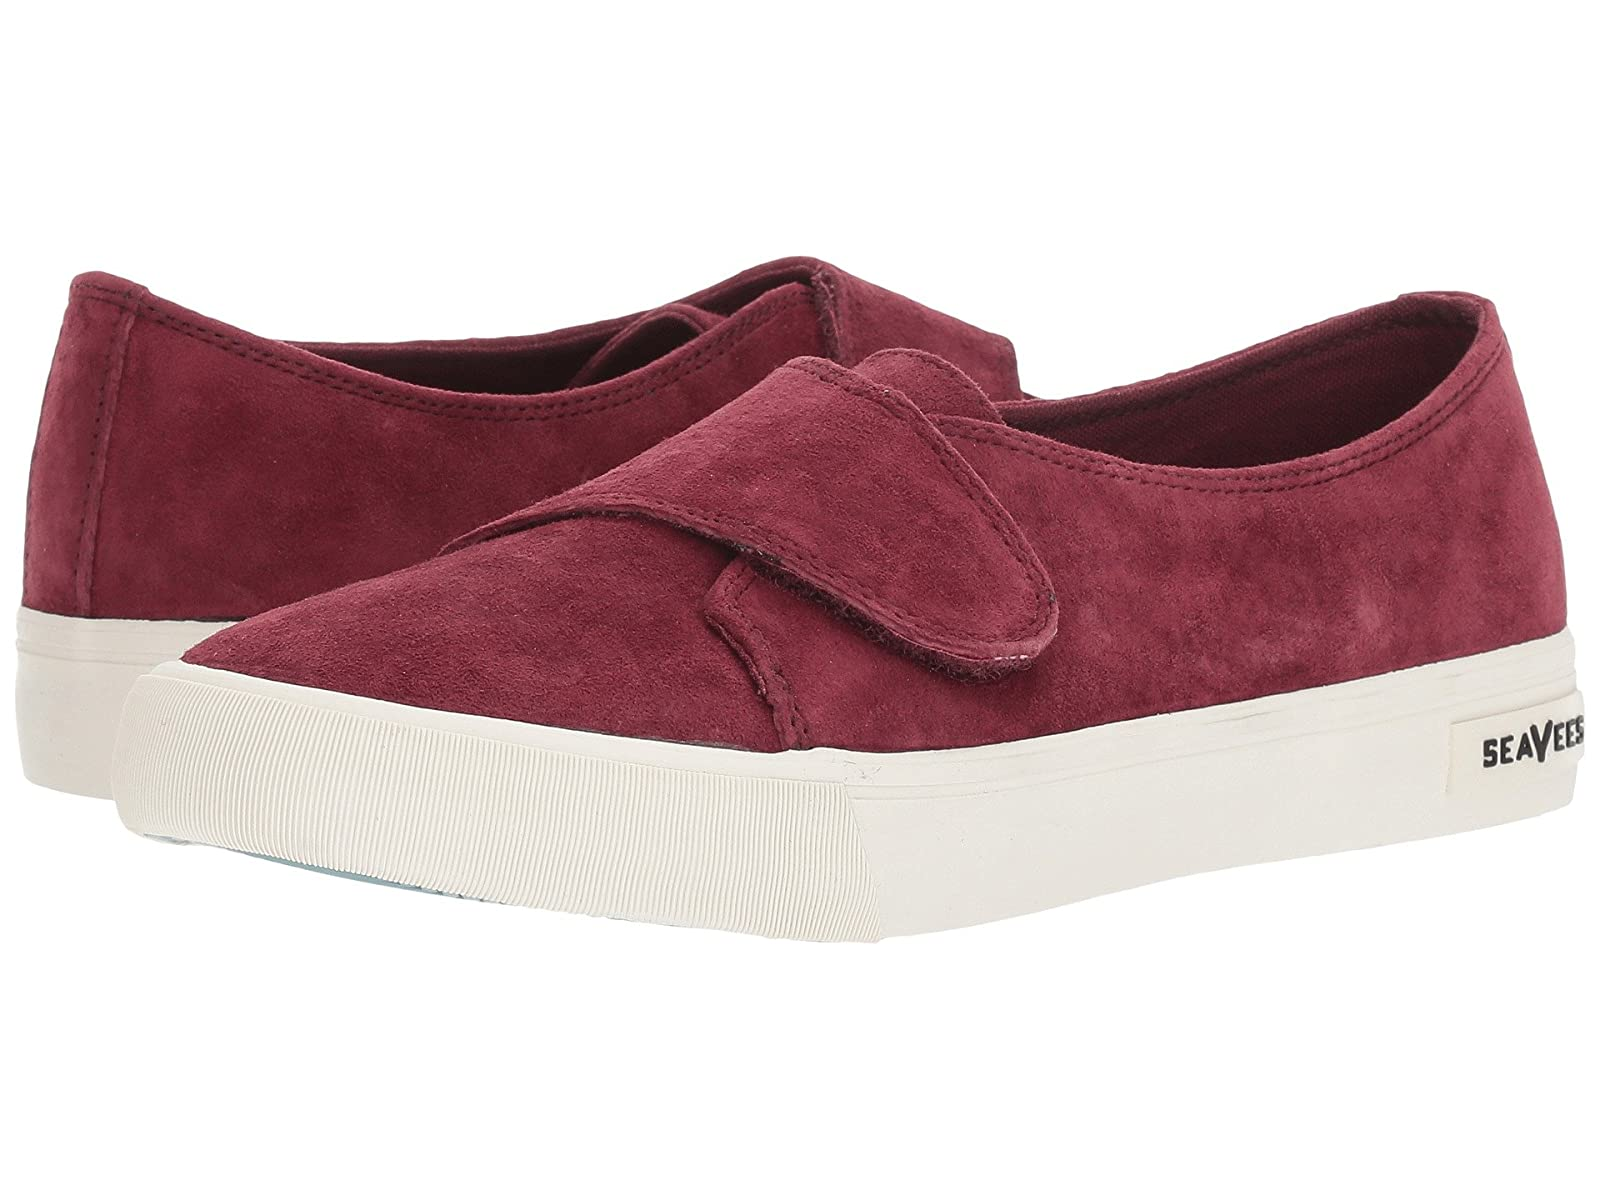 SeaVees Melrose Wrap SneakerCheap and distinctive eye-catching shoes